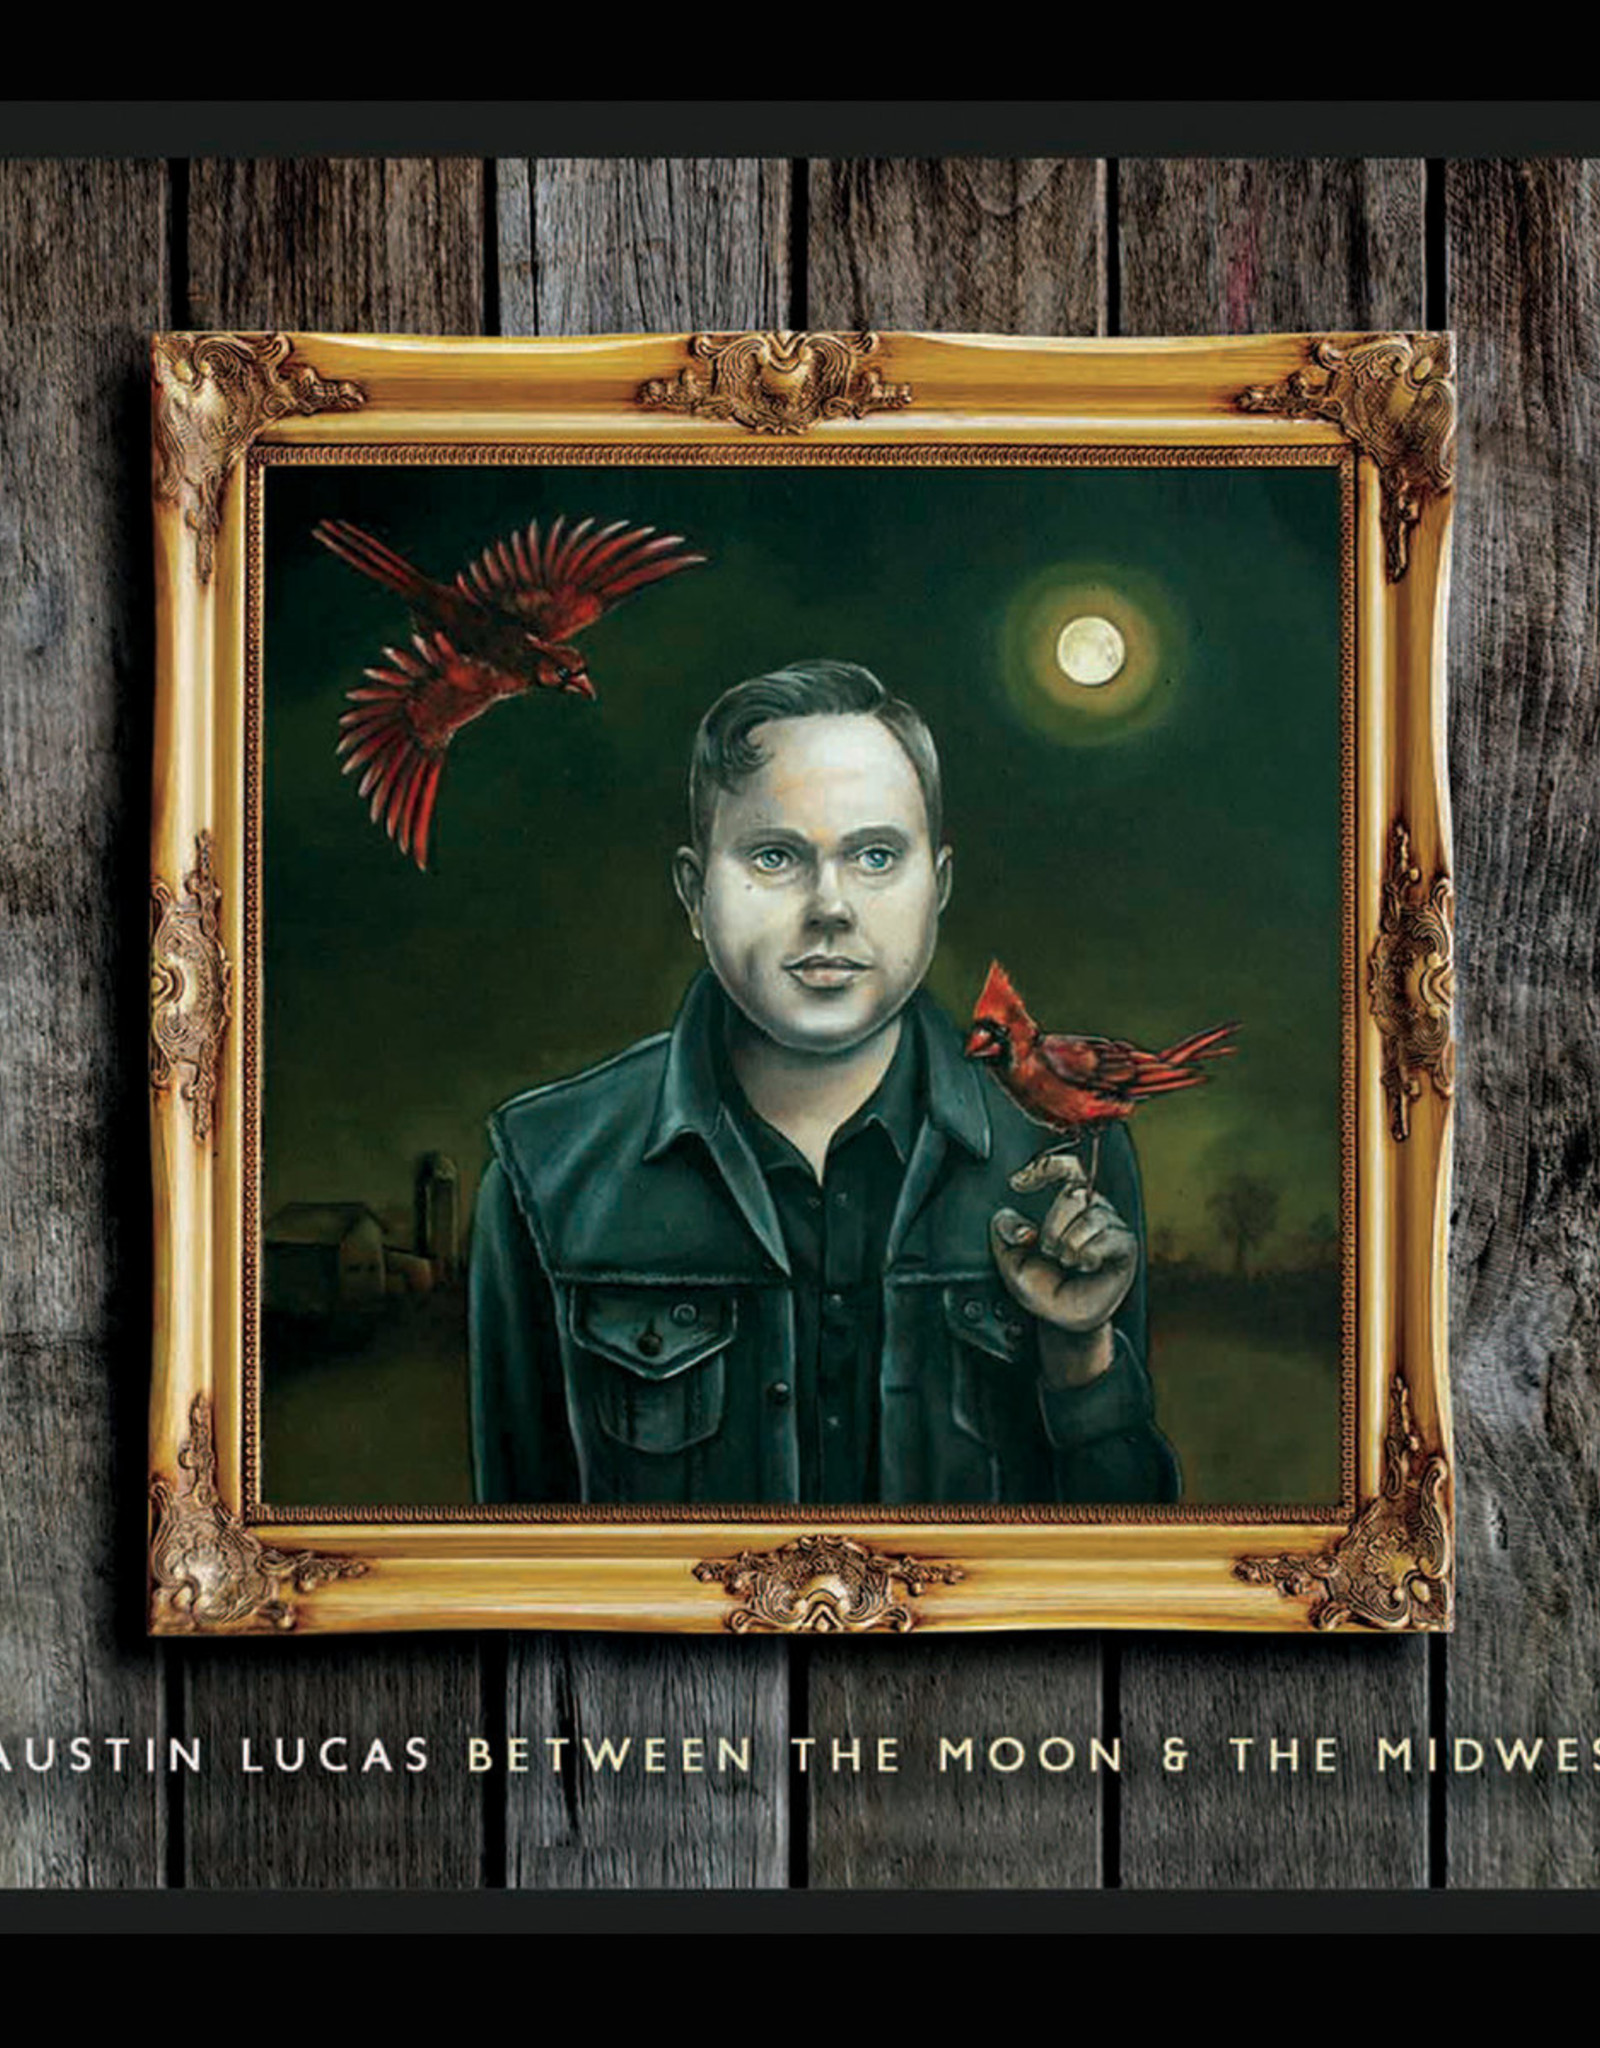 Austin Lucas - Between The Moon & The Midwest